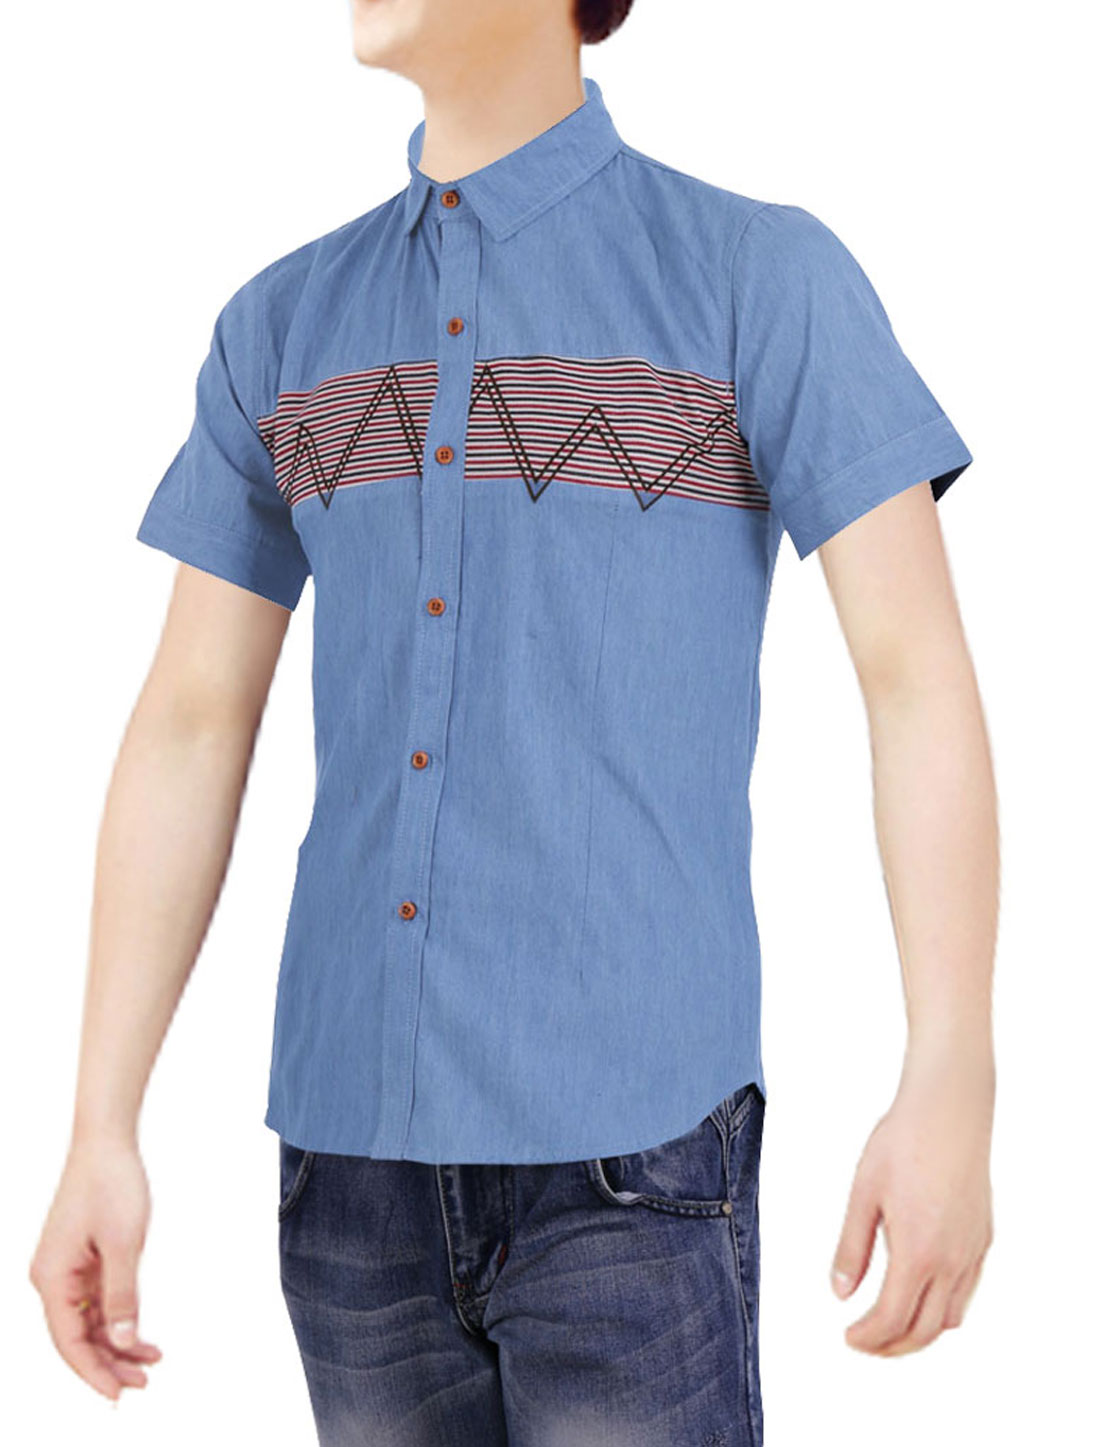 Man Chic Short Sleeve Buttoned Cuff Stripes Pattern Light Blue Denim Shirt S